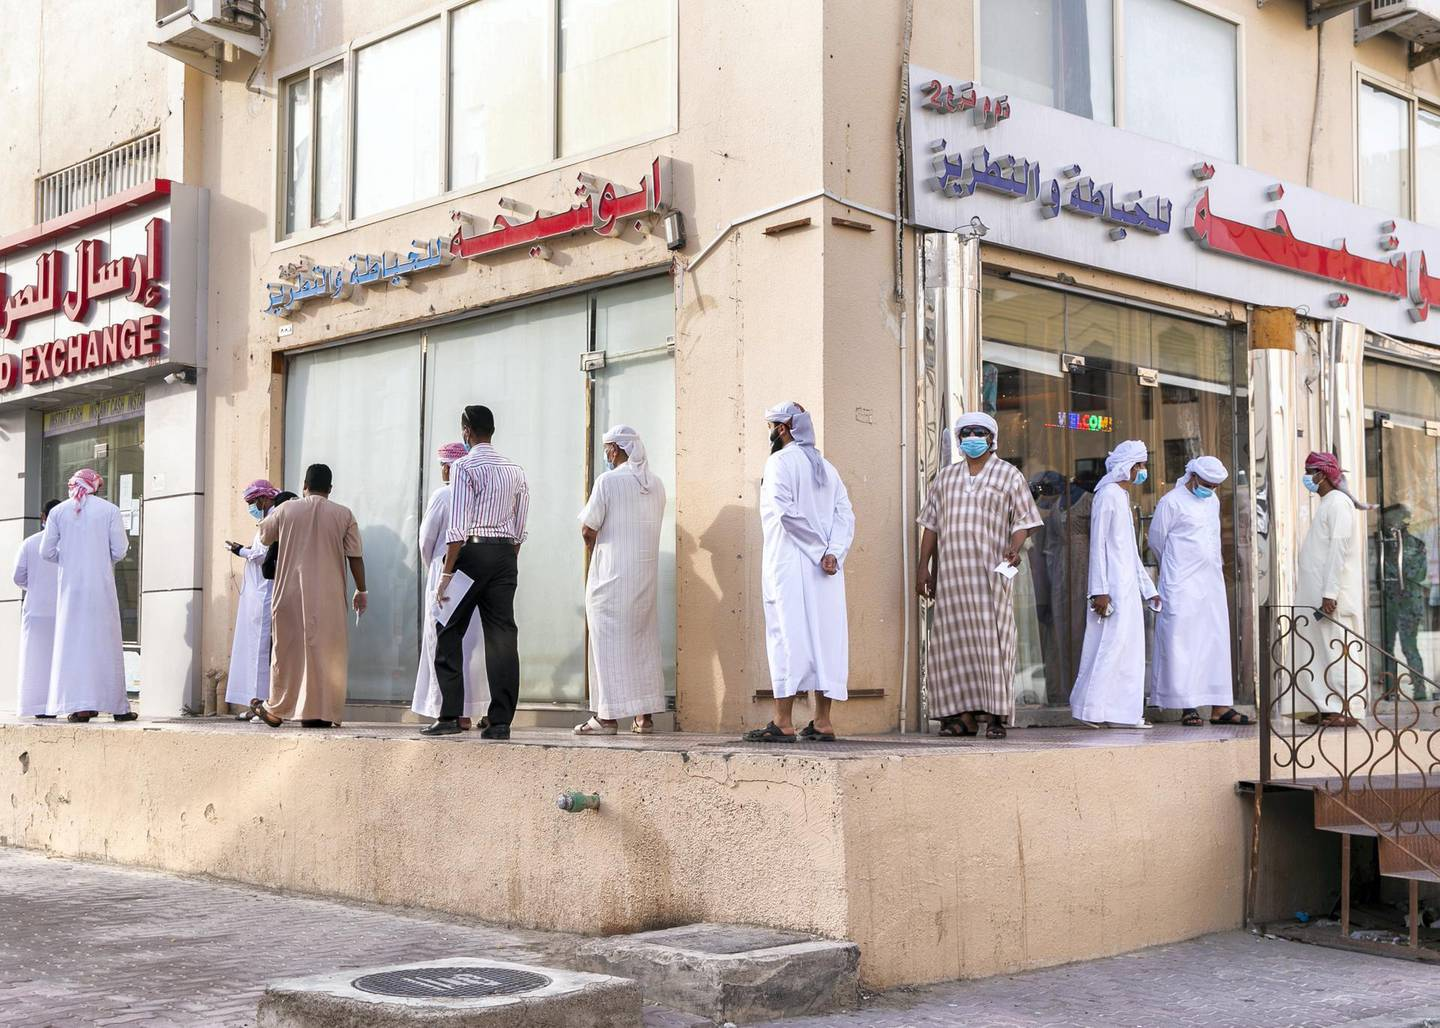 ABU DHABI, UNITED ARAB EMIRATES. 2- MAY 2020.Men line up at the money exchange in Baniyas neighborhood, as they prepare for Eid Al Fitr.(Photo: Reem Mohammed/The National)Reporter:Section: